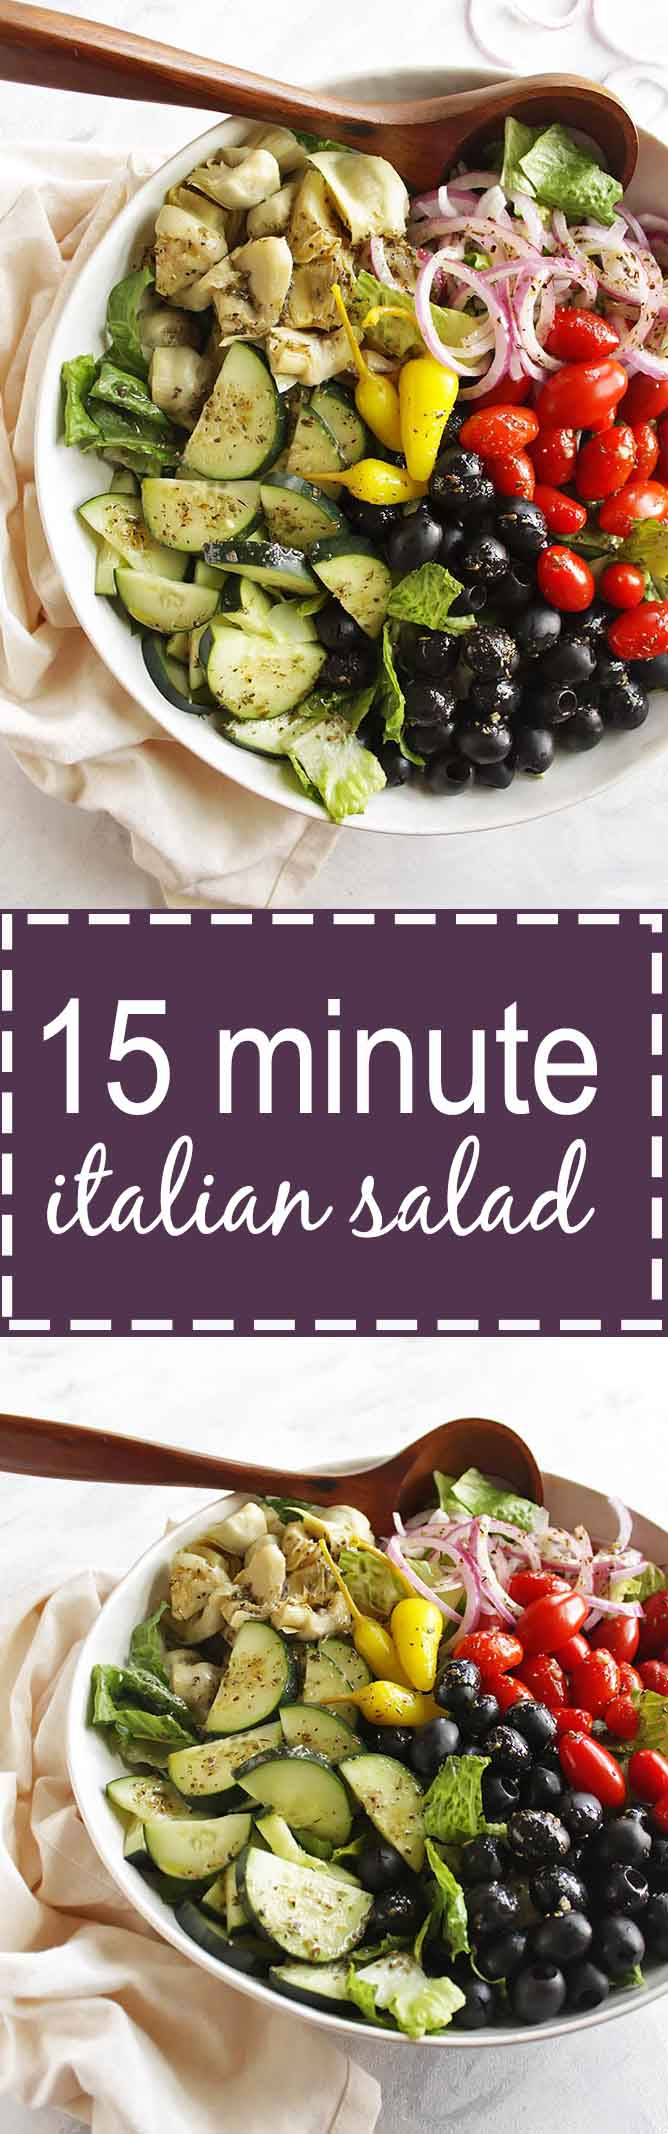 15 Minute Italian Salad - This recipe makes a great side salad to any meal. It's packed with all the Italian favorites and a tasty Italian Vinaigrette. This salad is quick and easy to make. Gluten free/vegetarian | robustrecipes.com